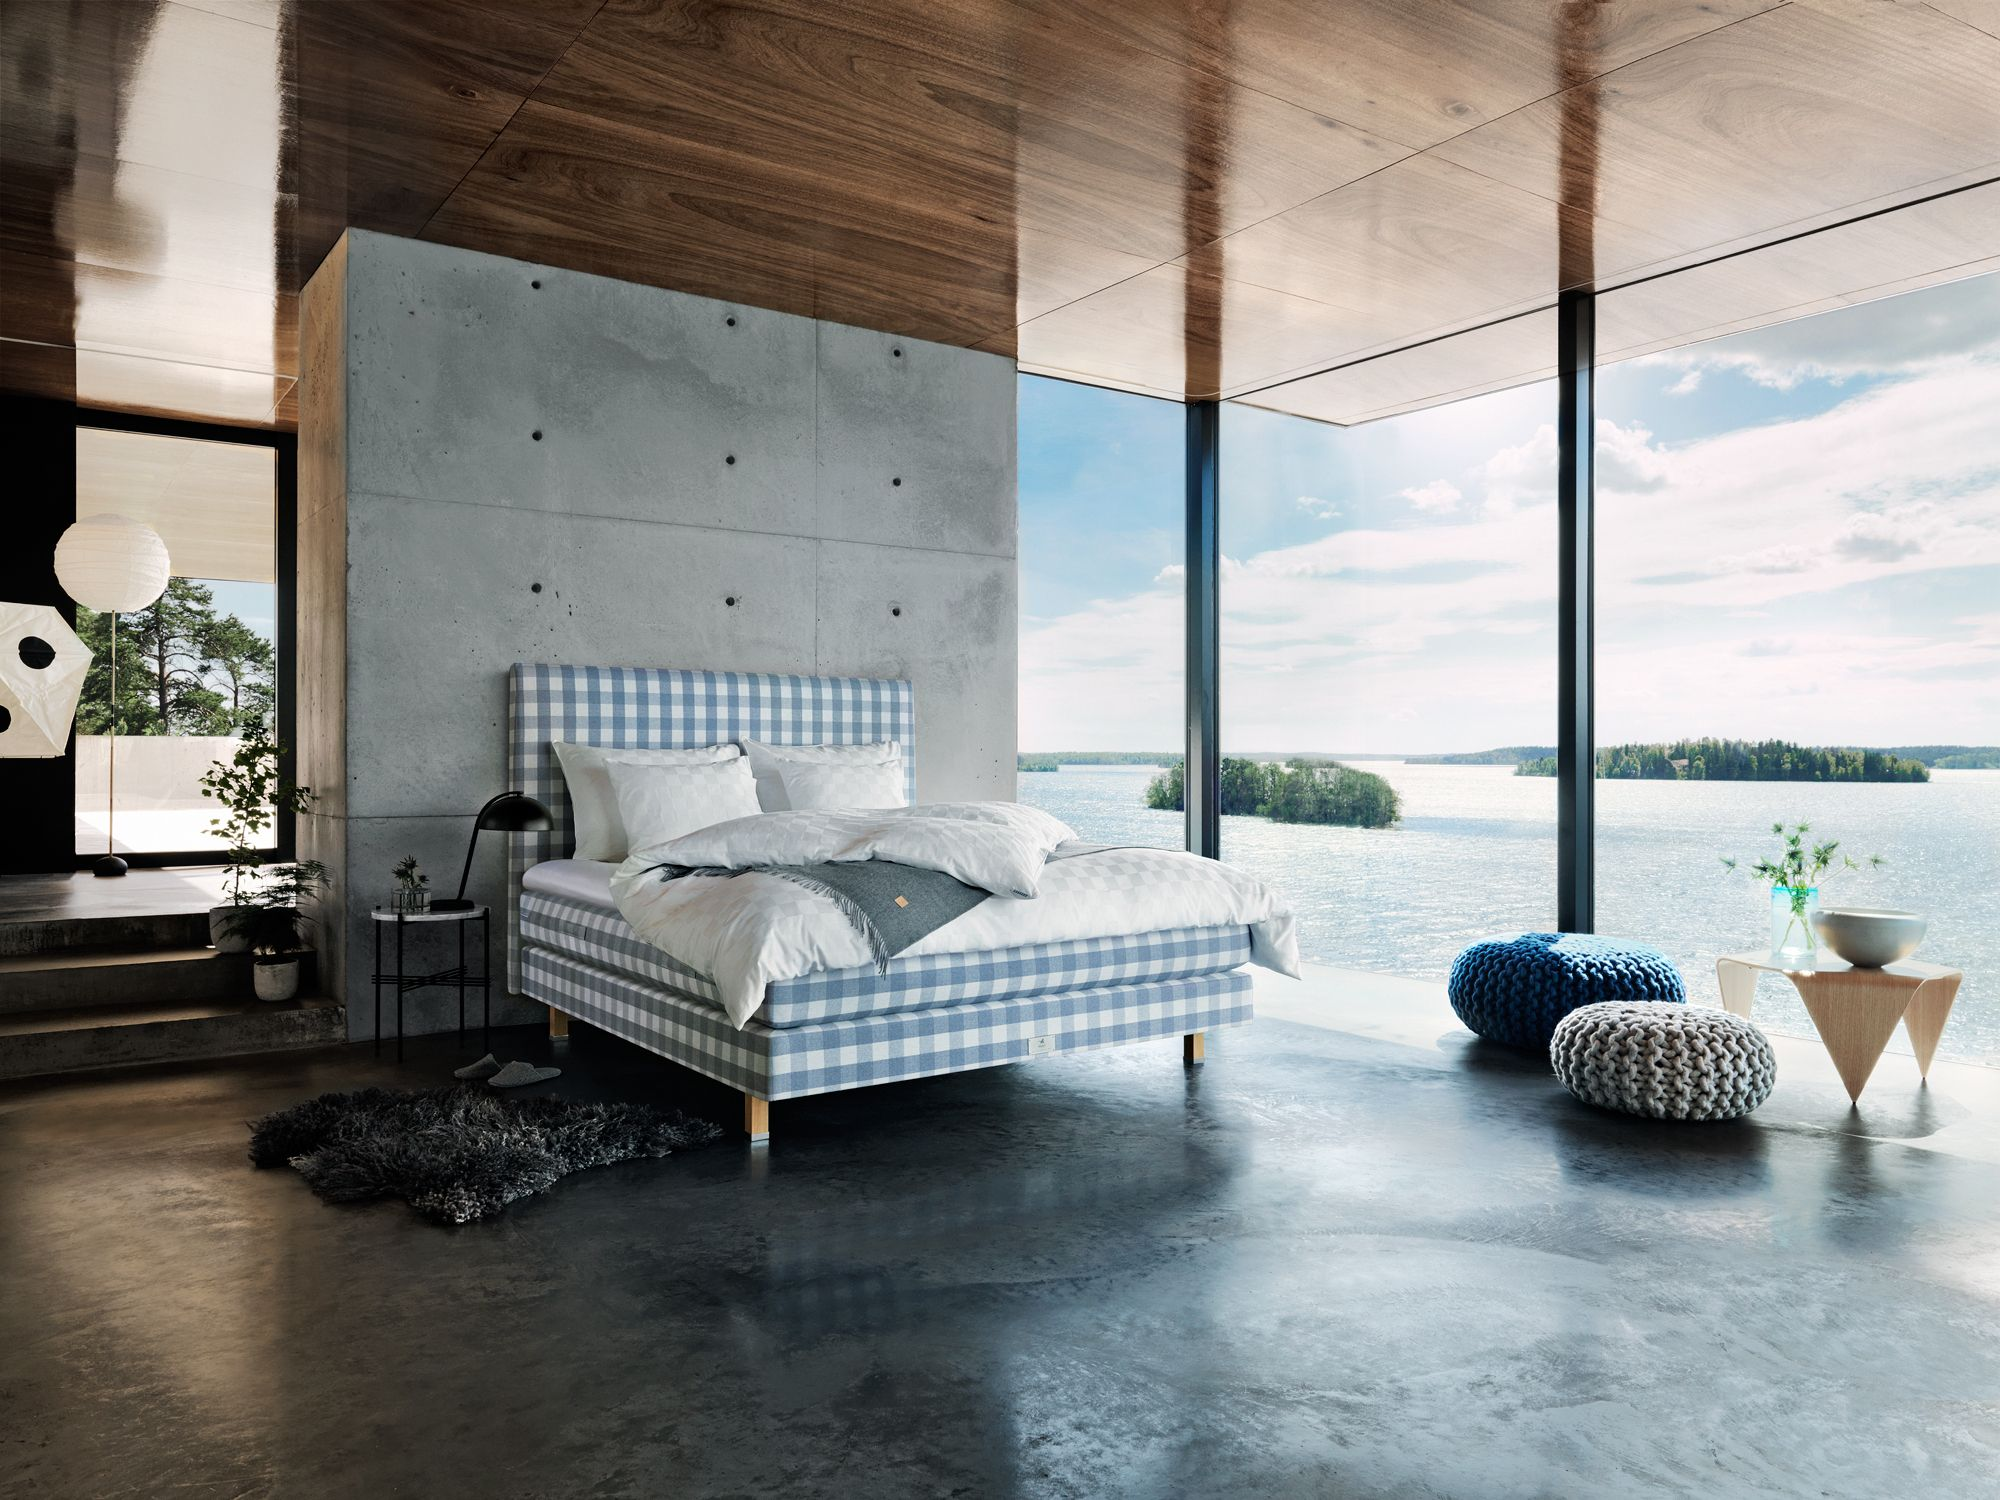 hastens special edition ocean blue an exclusive limited edition